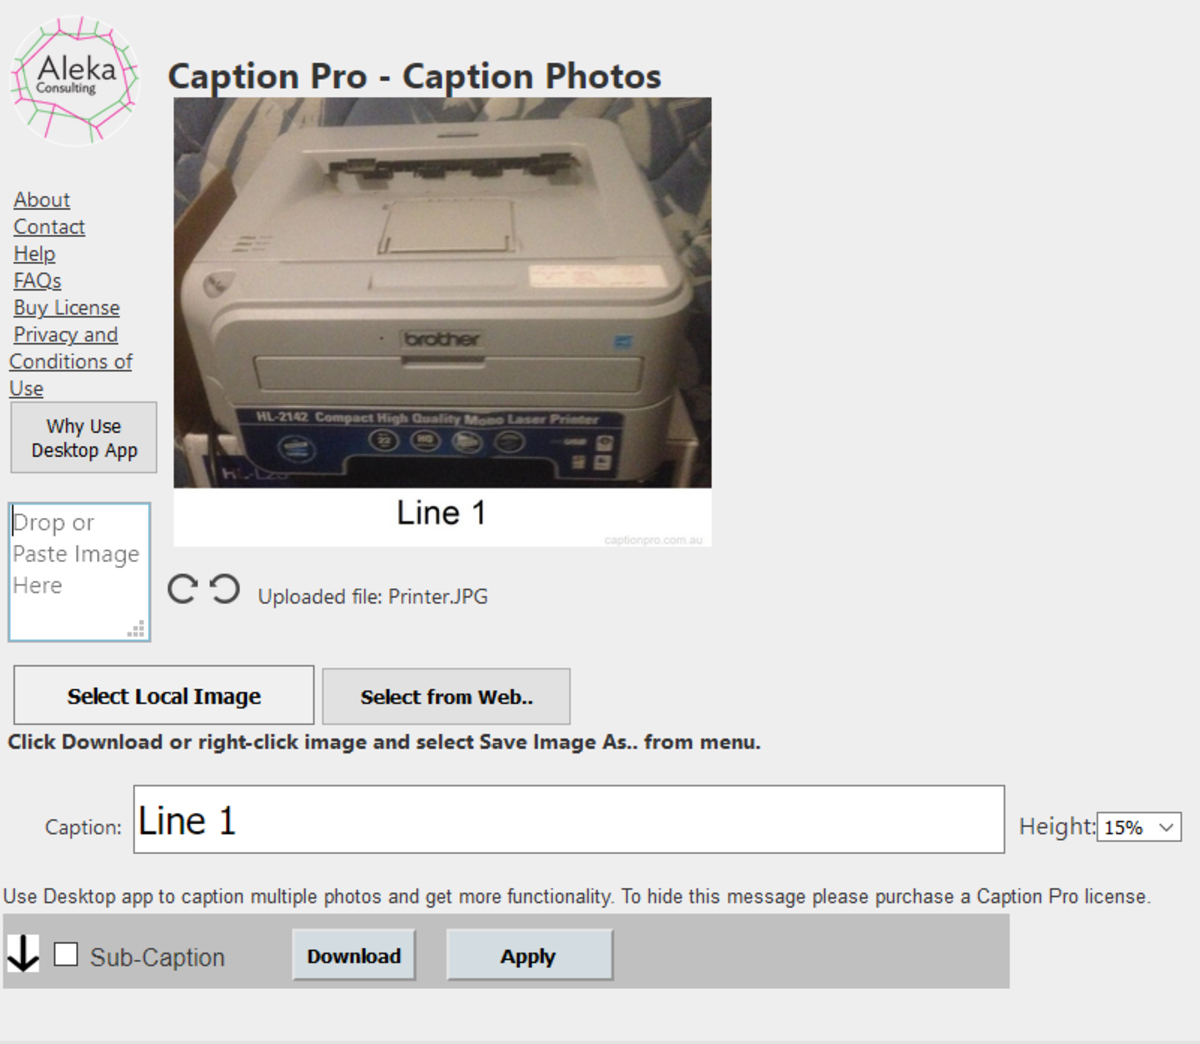 Caption Pro Web interface showing Caption only